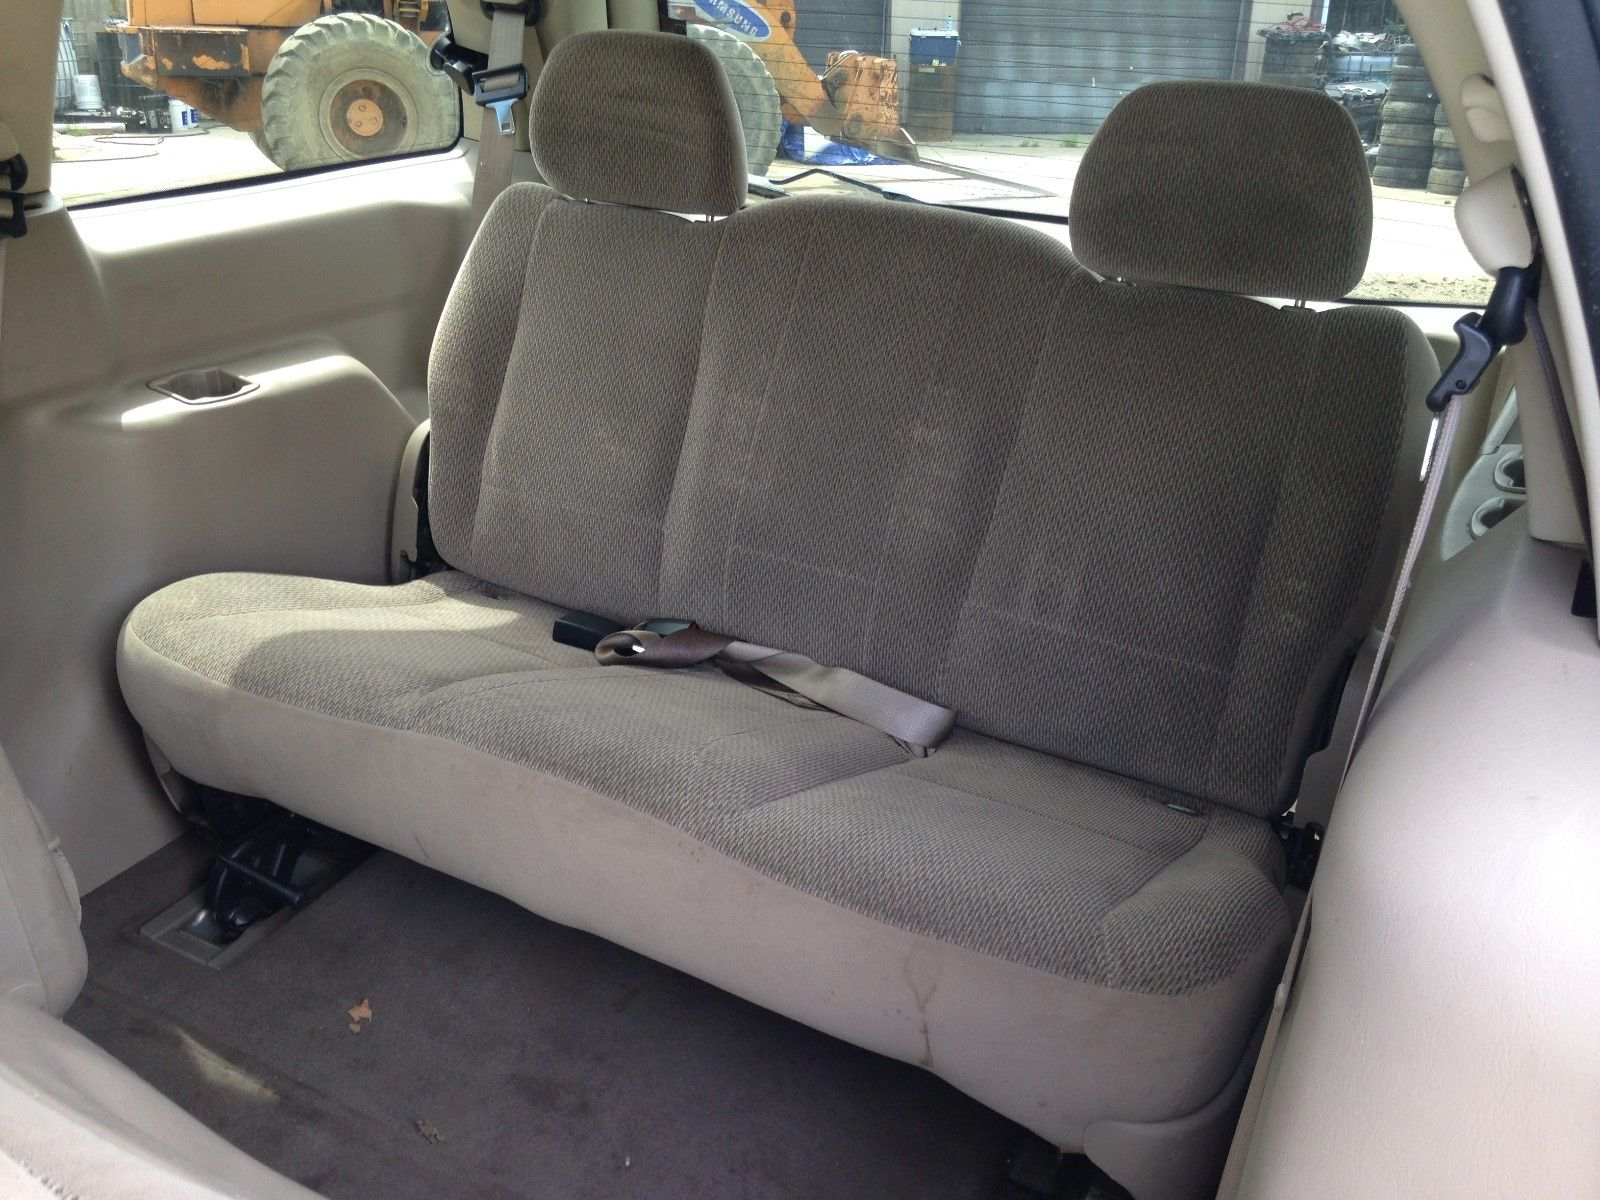 hight resolution of 01 02 03 ford windstar tan 3rd row seat 2001 2002 2003 third row seats storage